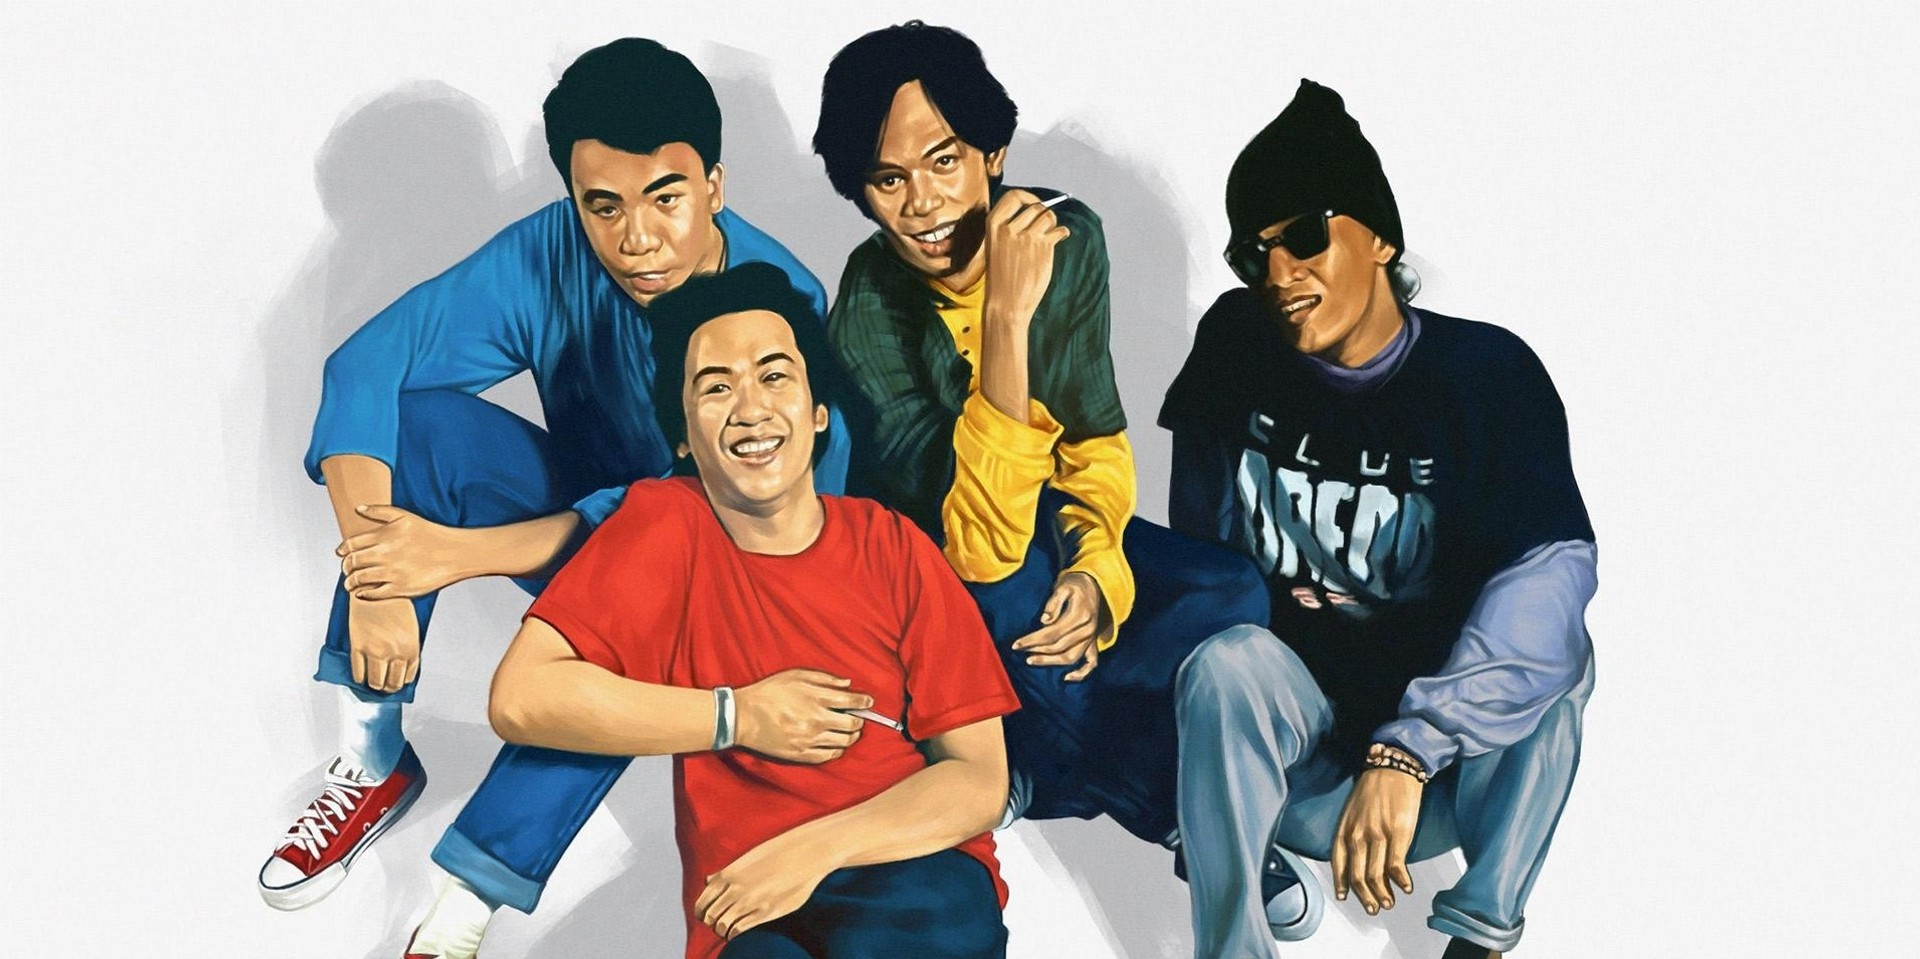 Linya-Linya team up with Eraserheads for special collaborative shirt